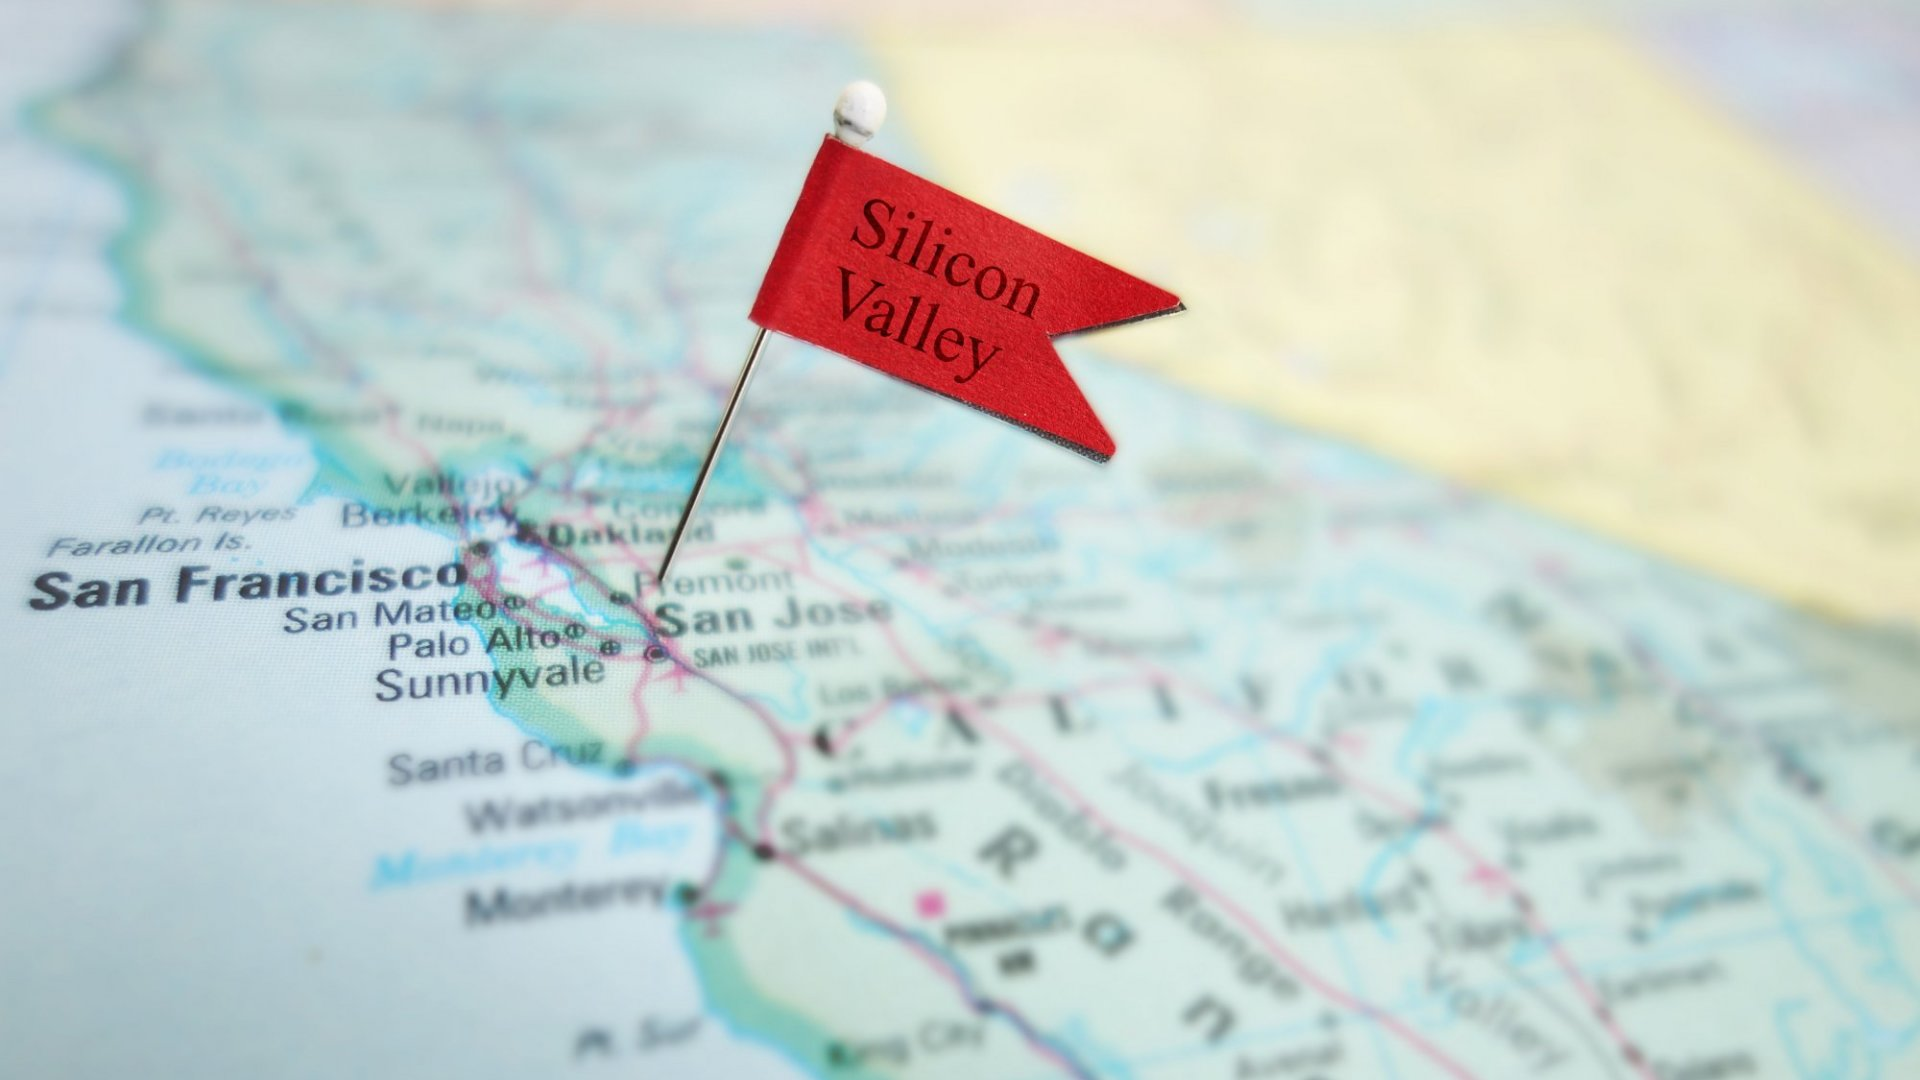 6 Questions You Should Ask Yourself Before Making the Big Move to Silicon Valley